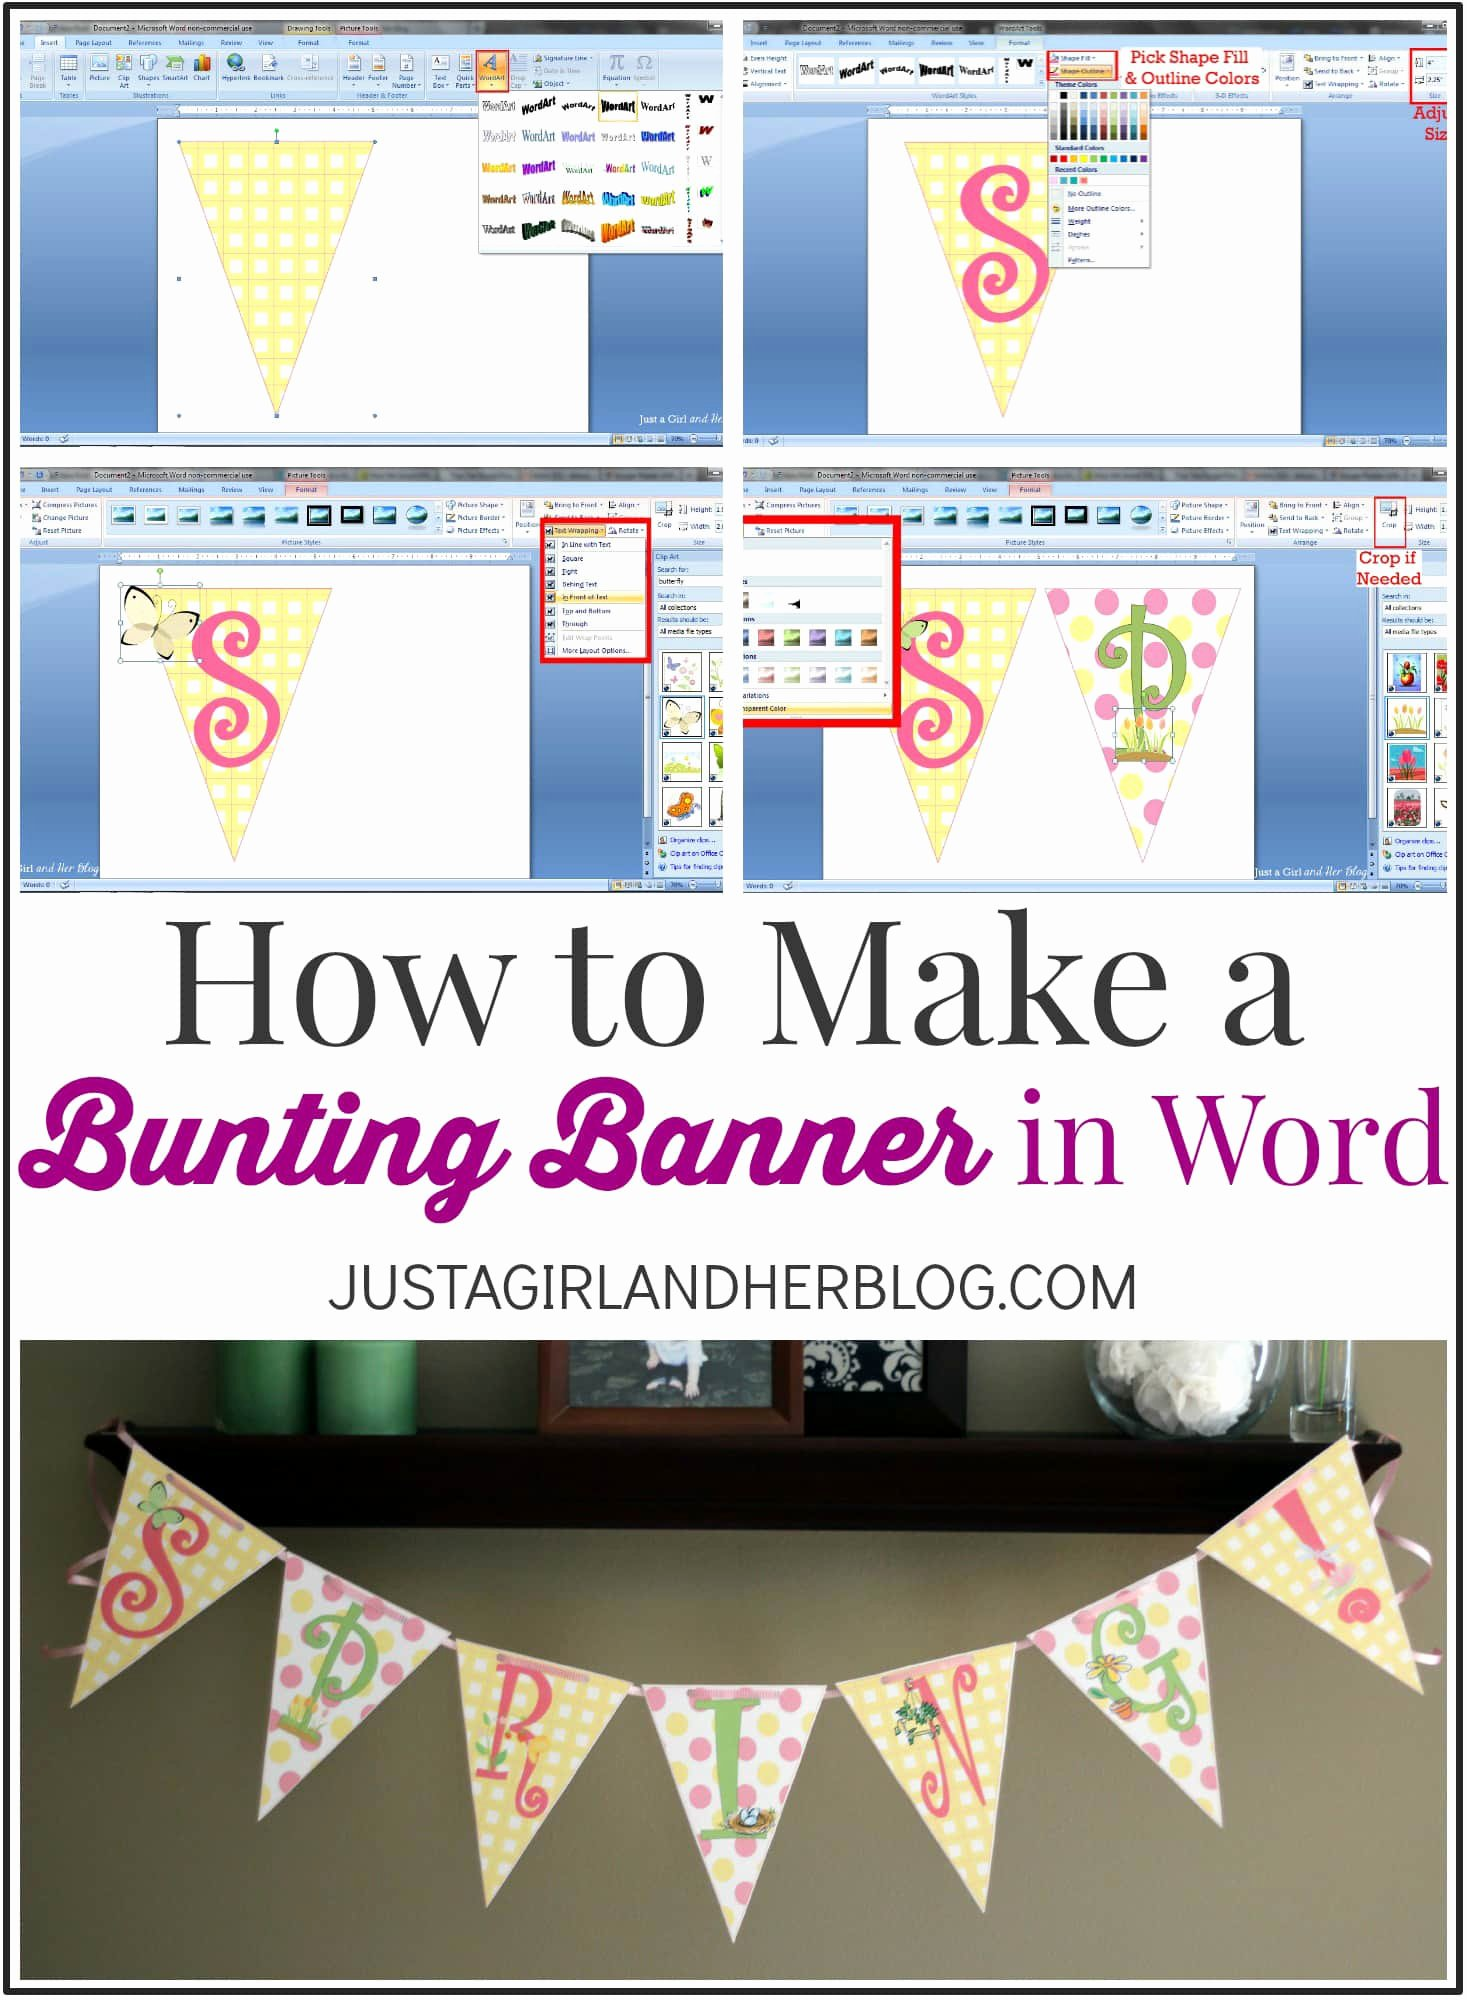 Free Banner Template Word Unique How to Make A Bunting Banner In Word with Clip Art Tips